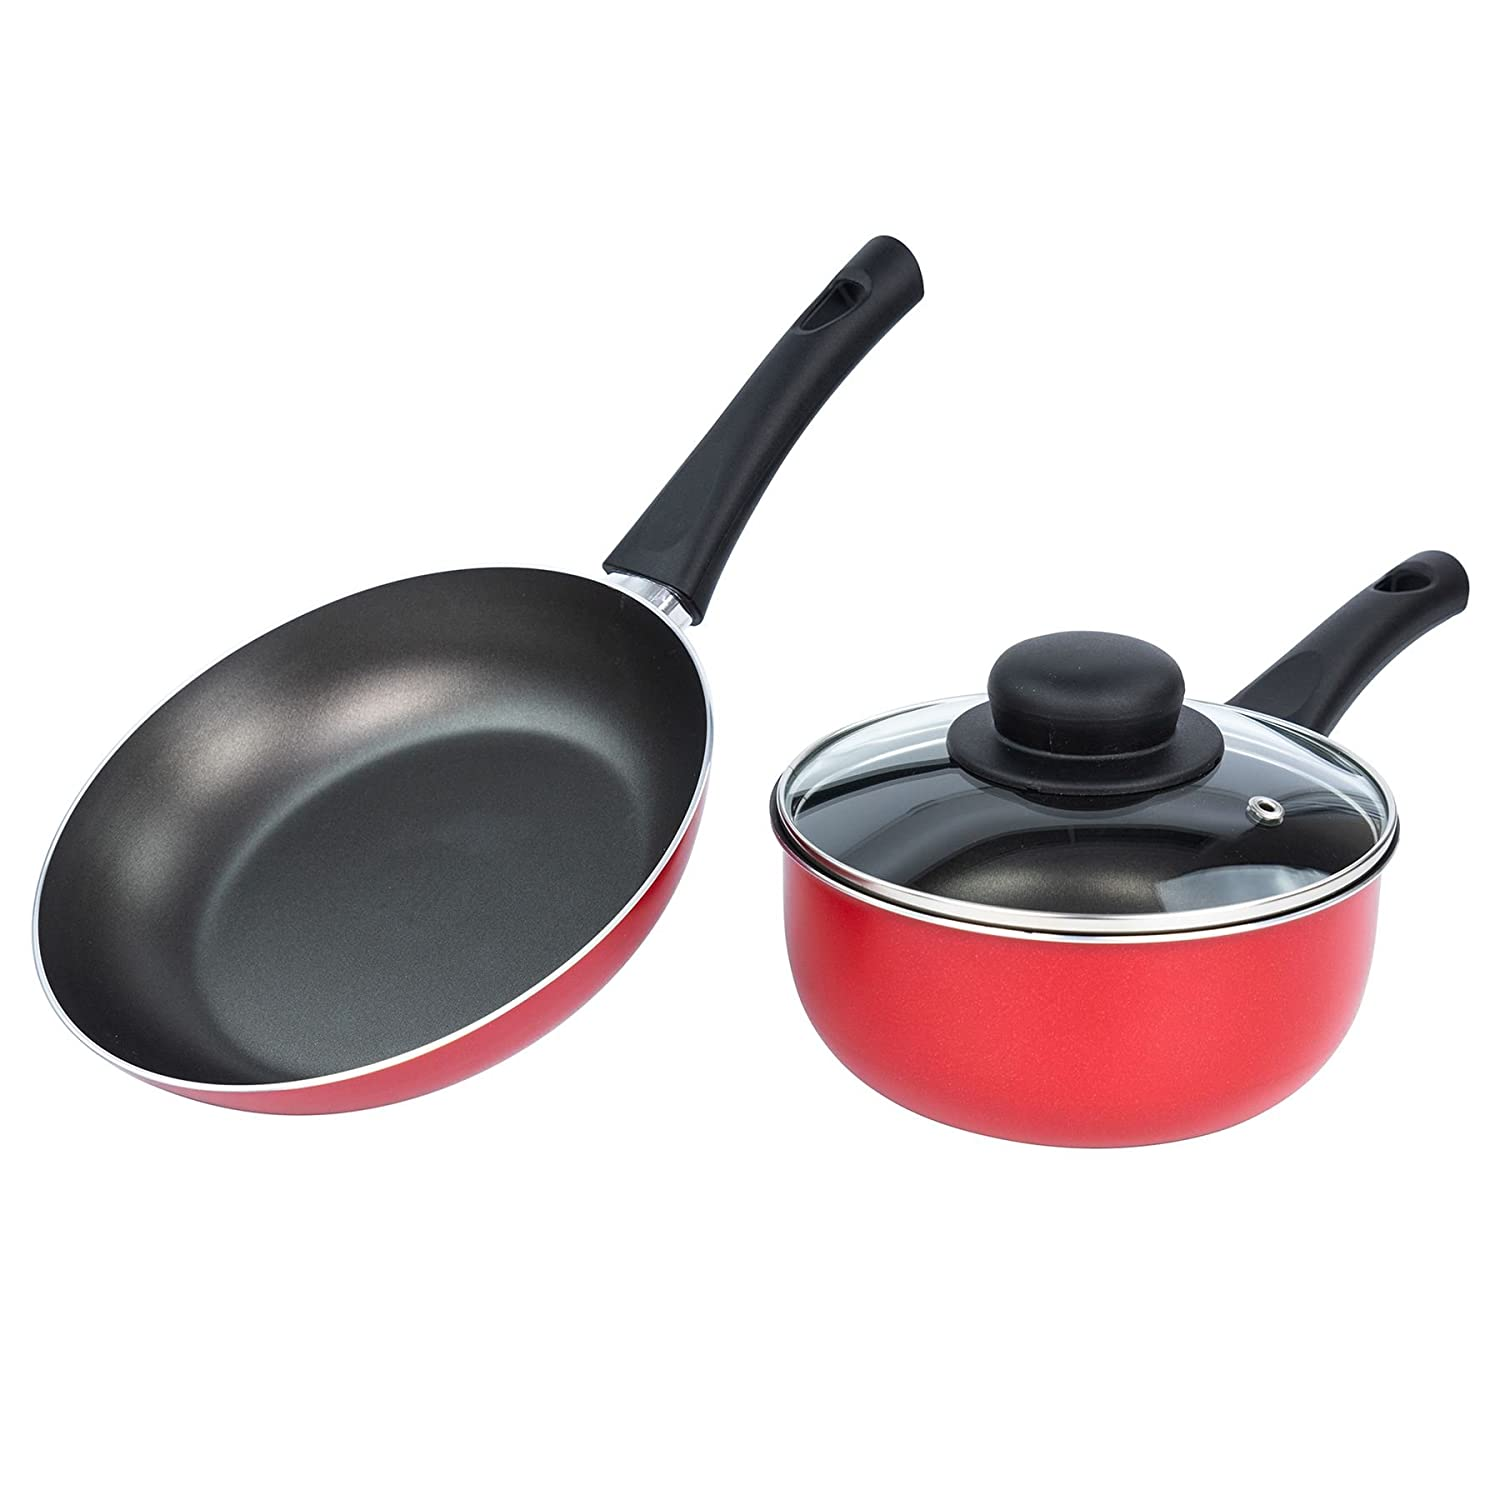 ILLA Alegria Non-Stick Cookware Set - 20cm Frying Pan & 16cm Saucepan with Lid - Red